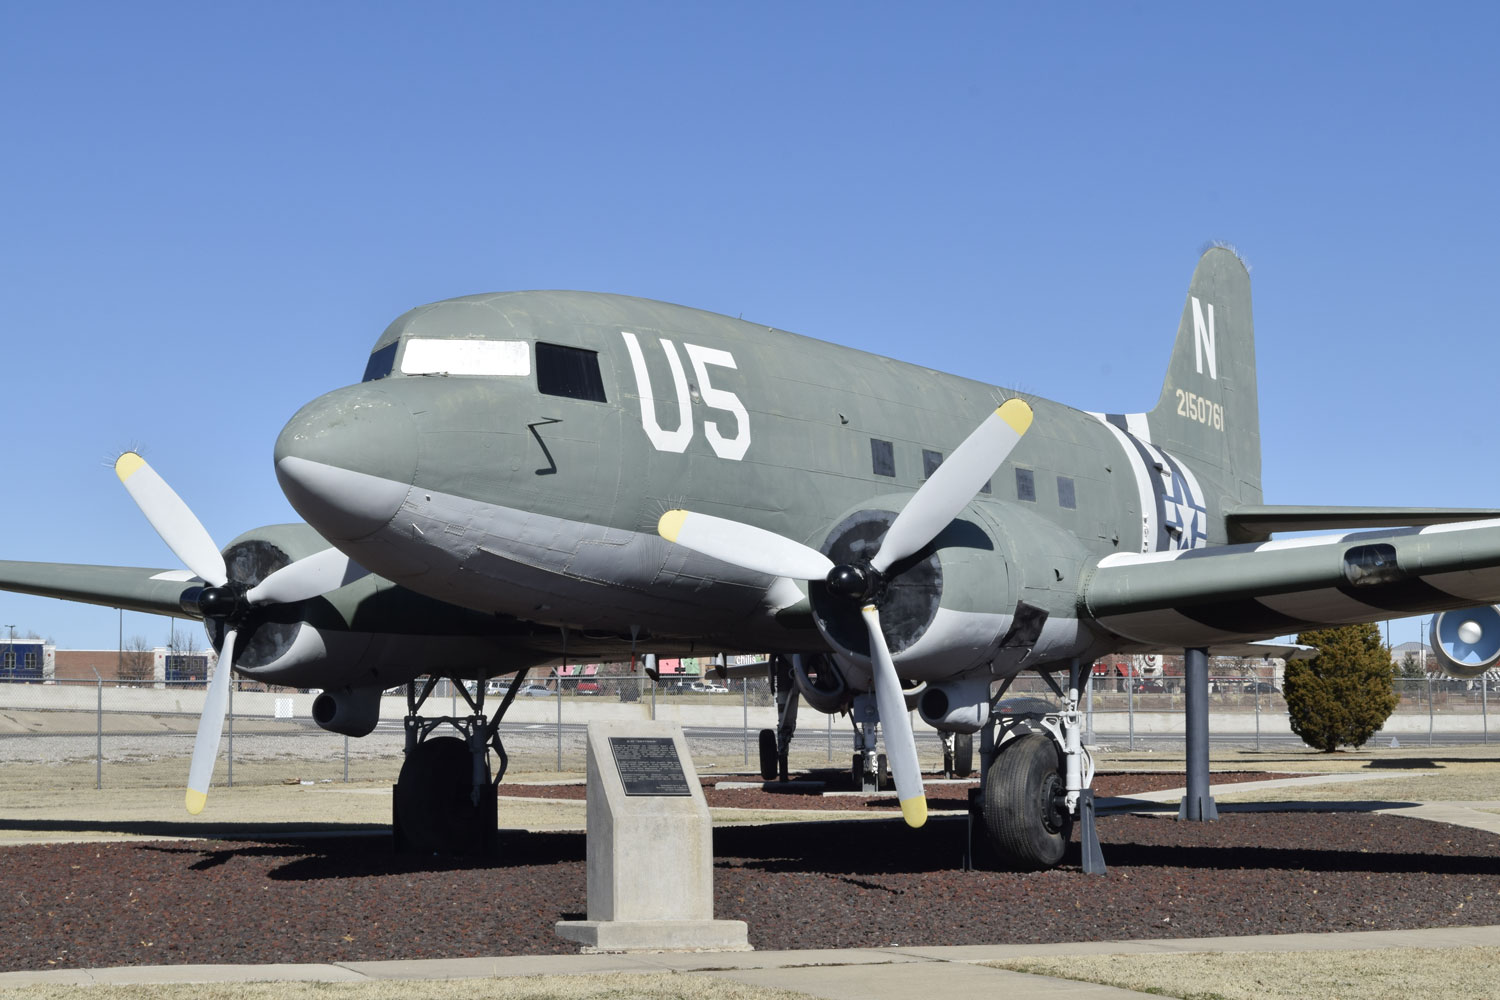 Douglas C-47A Skytrain on display in the Charles B. Hall Memorial Air Park on Feb. 16, 2017, Tinker Air Force Base, Oklahoma. The Douglas aircraft production facility produced 5,231 C-47s in Oklahoma City on what eventually became Tinker Air Force Base.